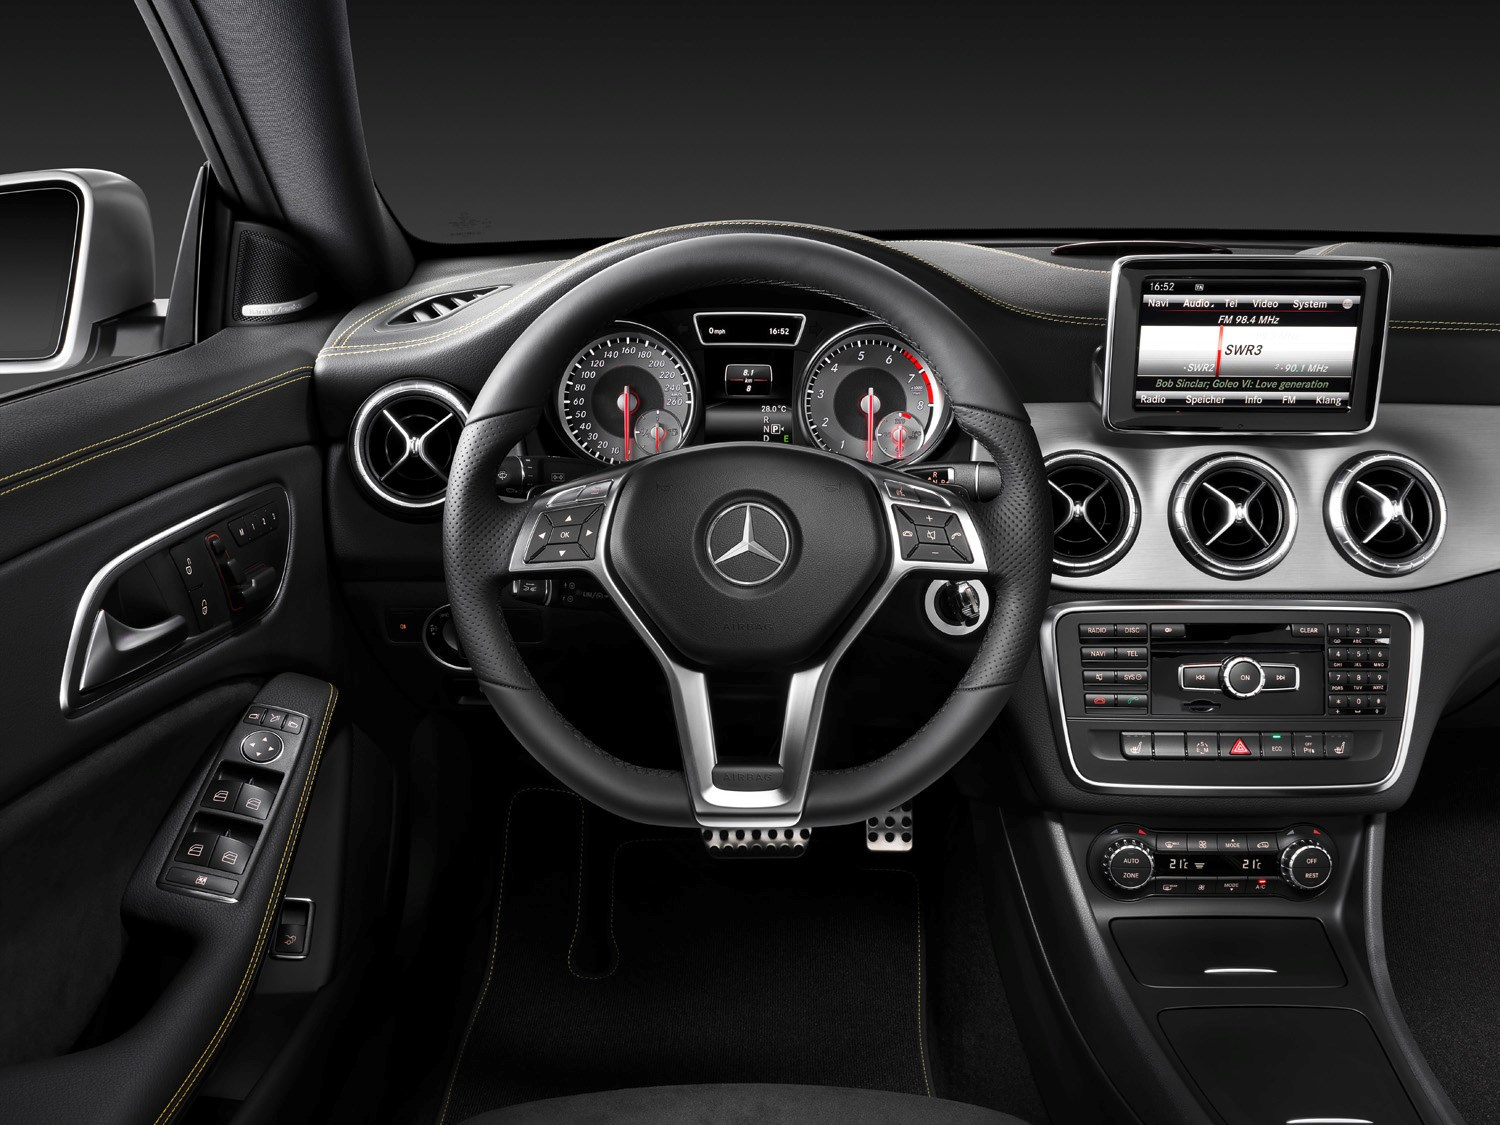 Mercedes benz cla class coupe review 2013 parkers for Mercedes benz interiors